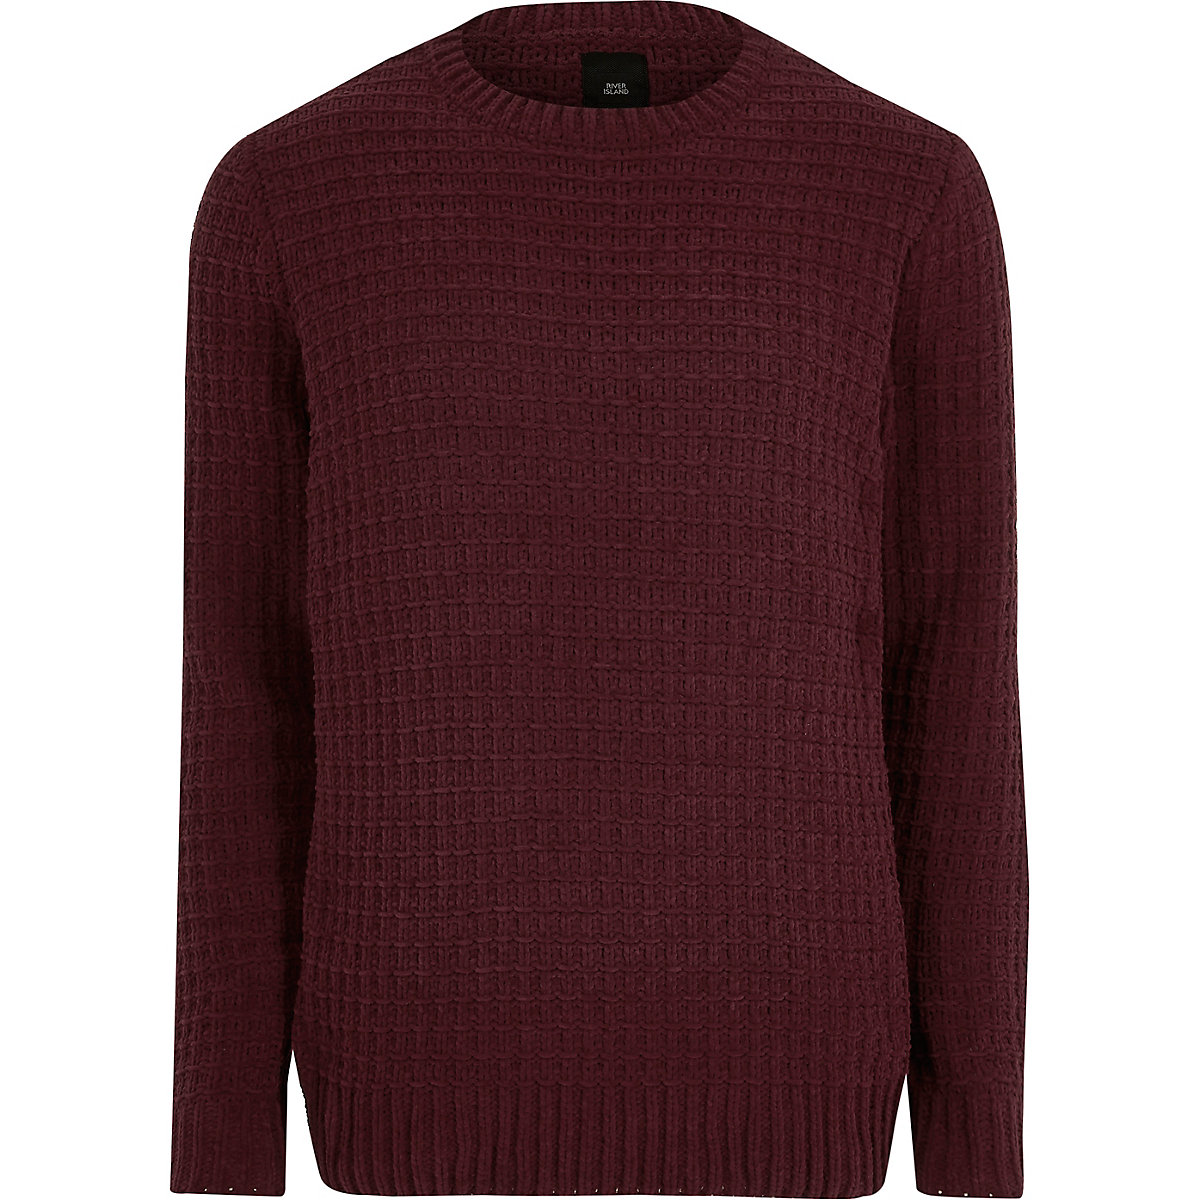 Burgundy textured chenille knit jumper